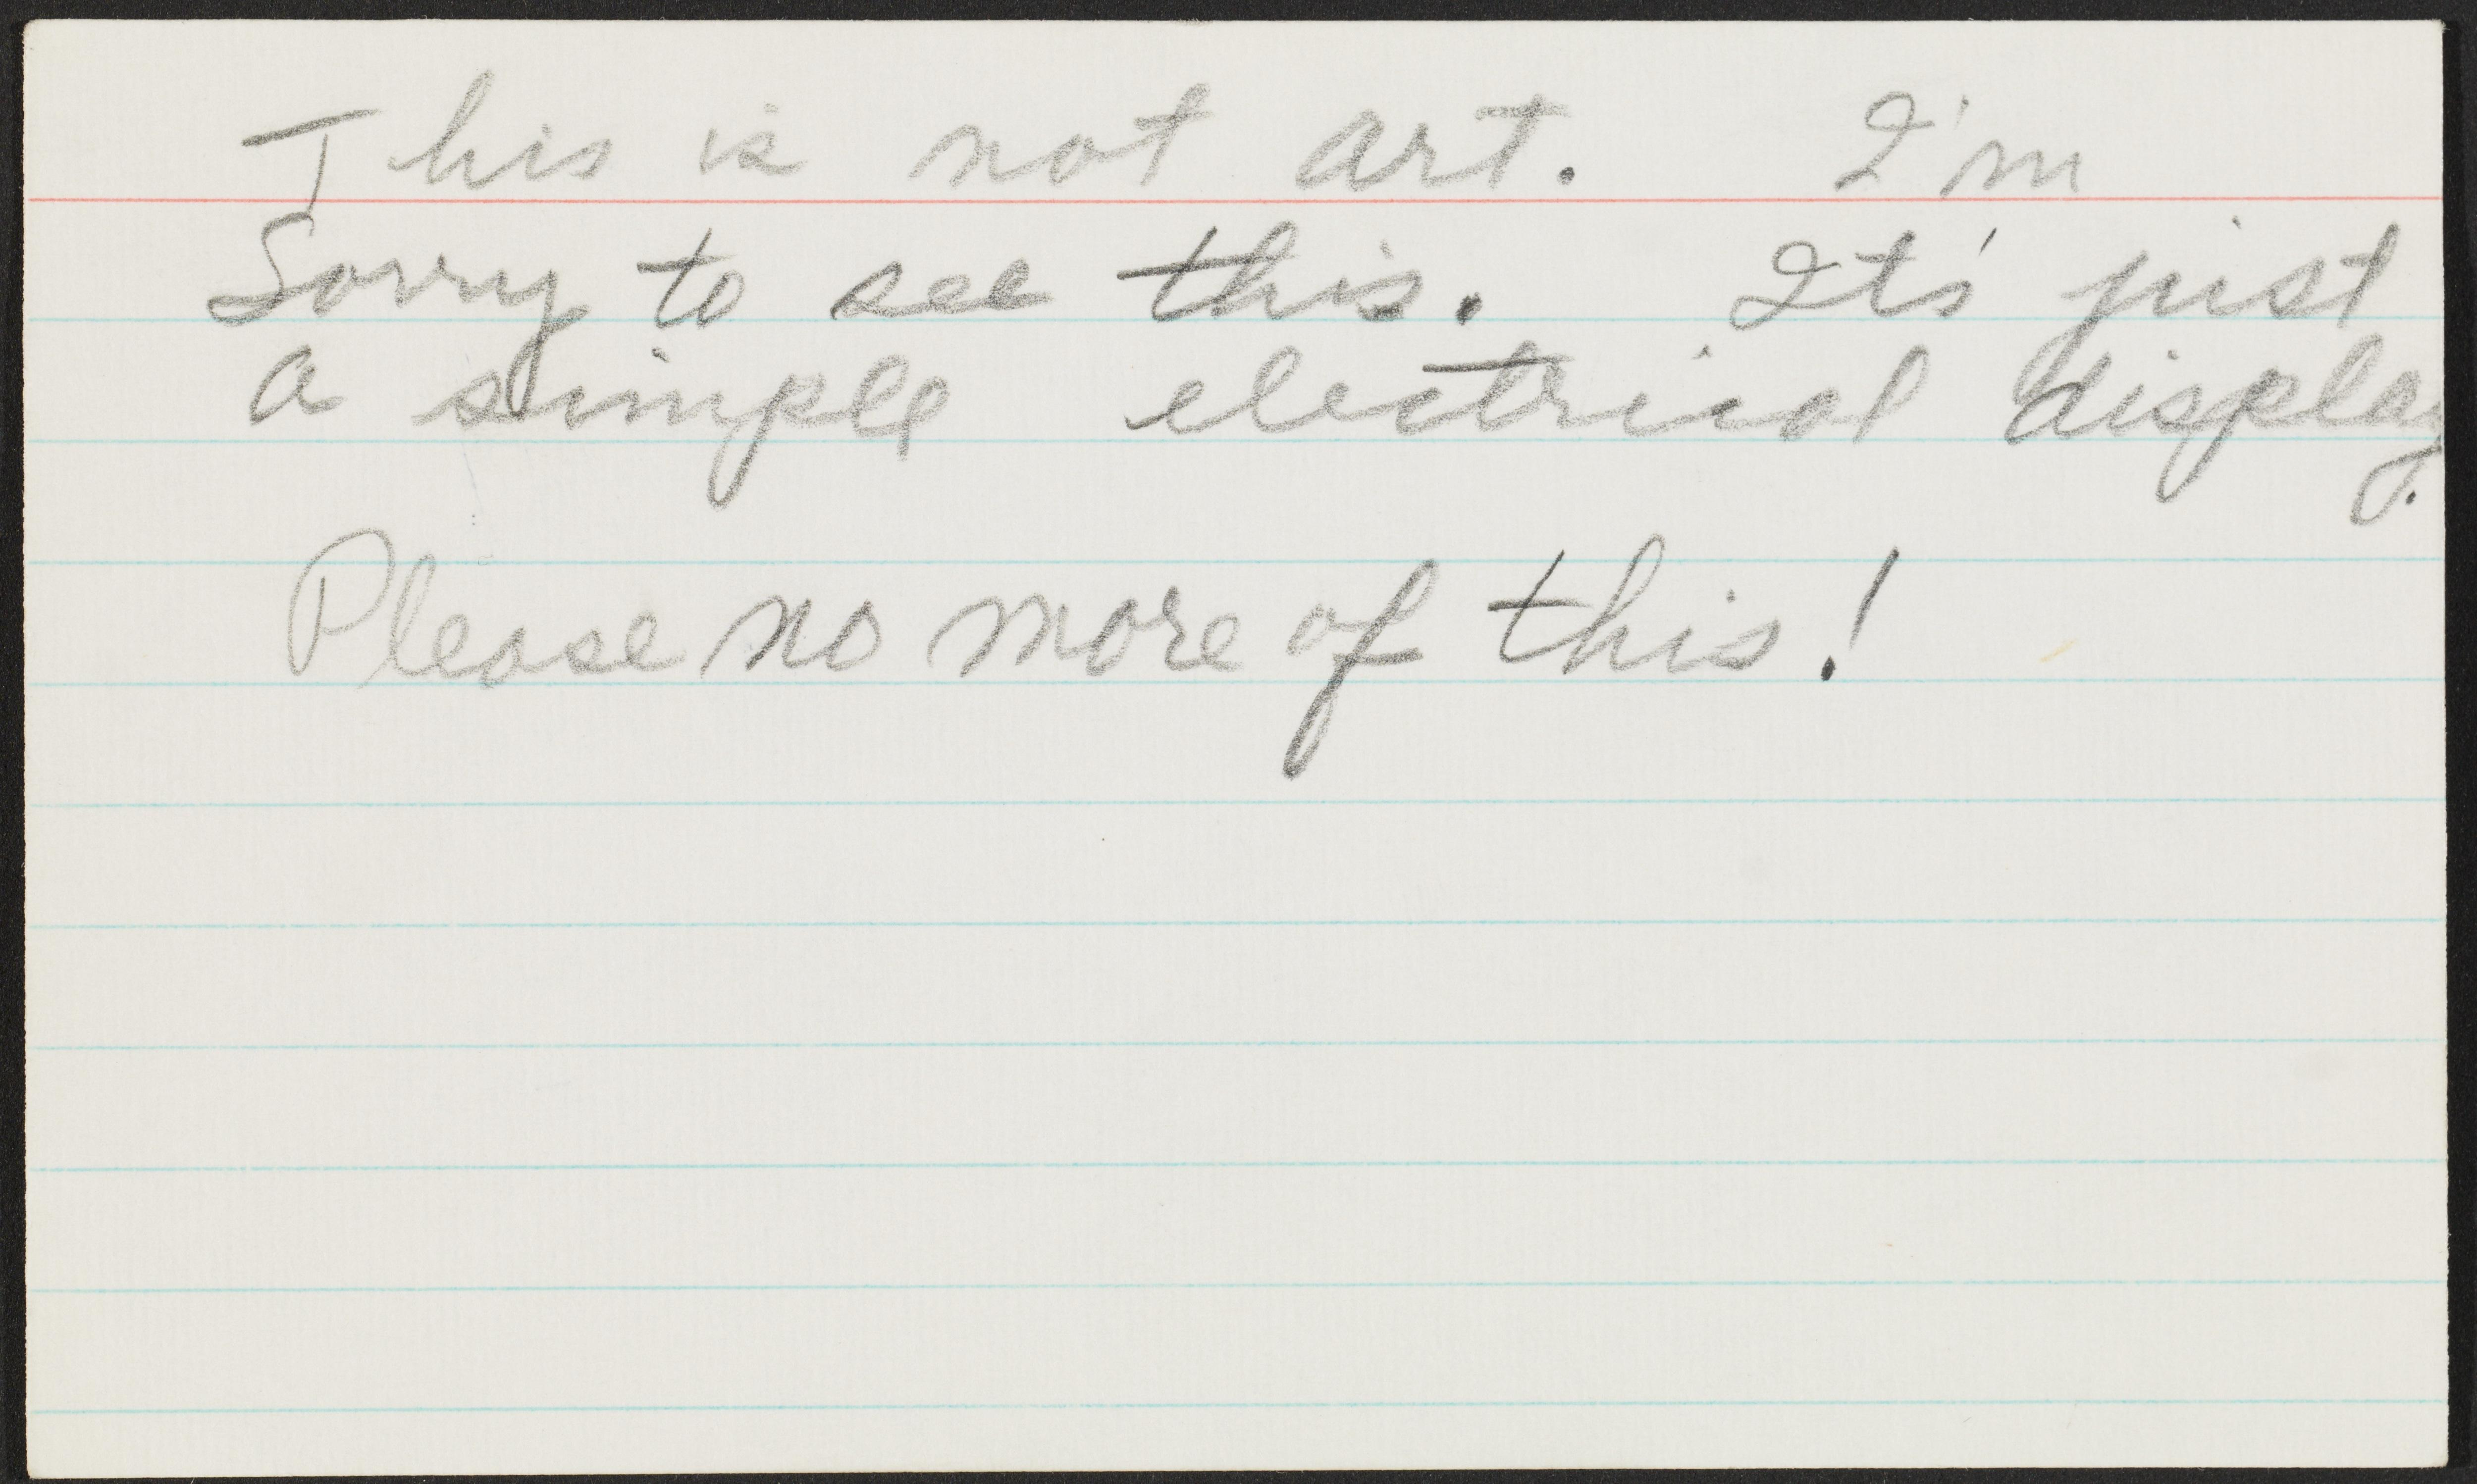 """A ruled index card with cursive text reads """"This is not art. I'm sorry to see this. It's just a simple electrical display. Please no more of this!"""""""